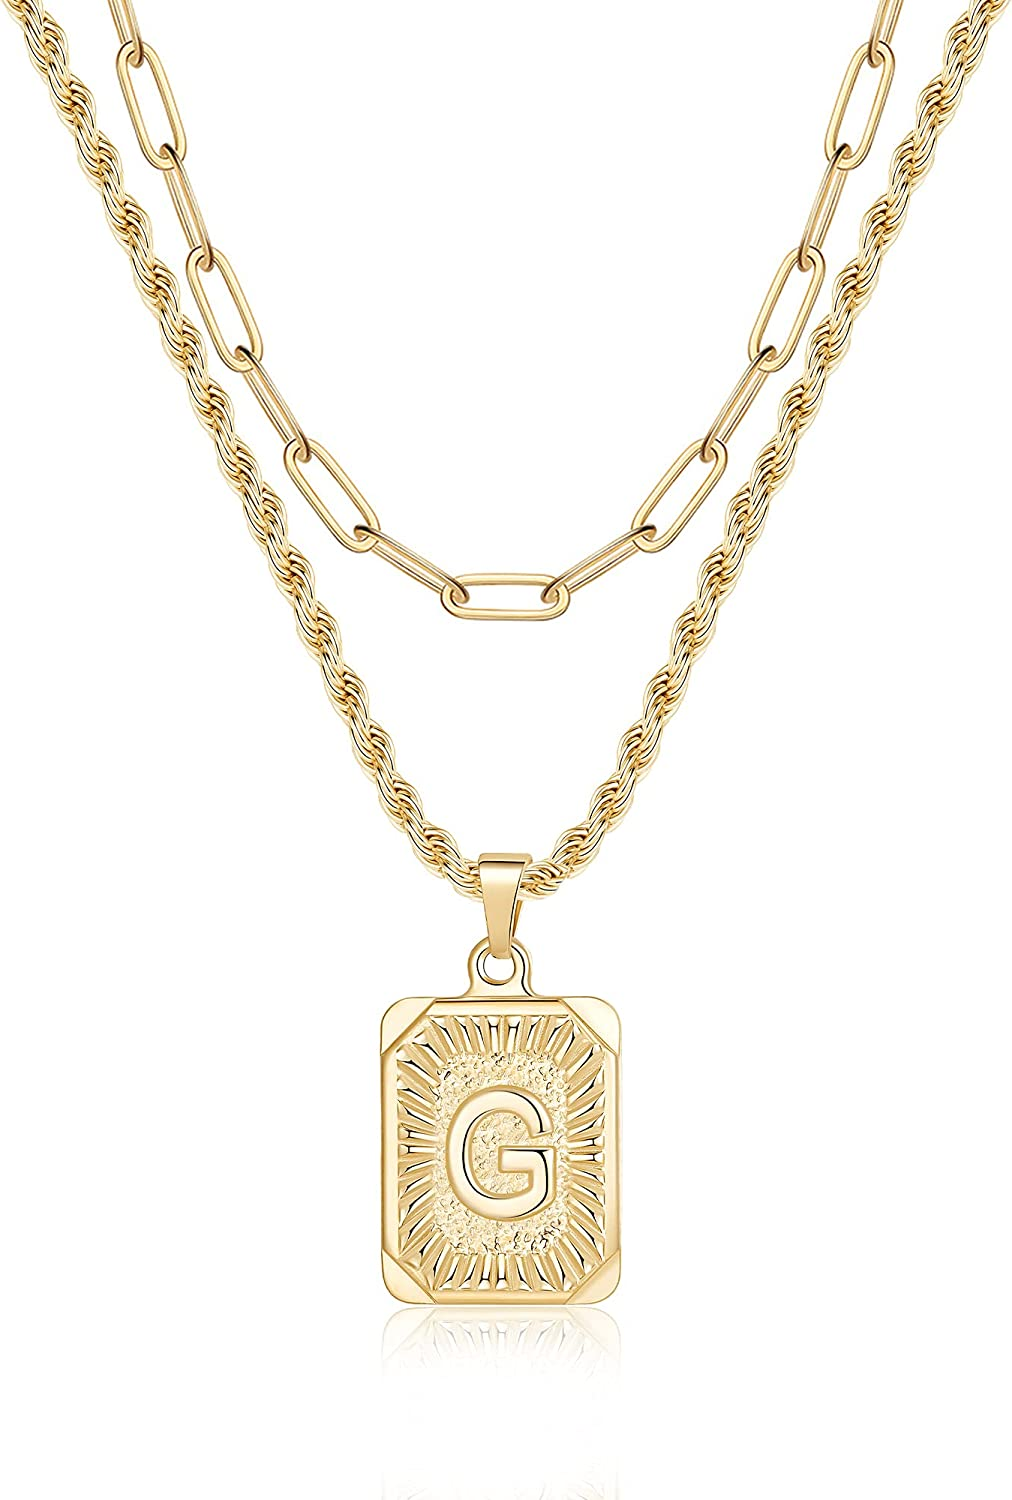 Gold Layered Initial Necklaces for 14K trust Women Initia Max 90% OFF Plated